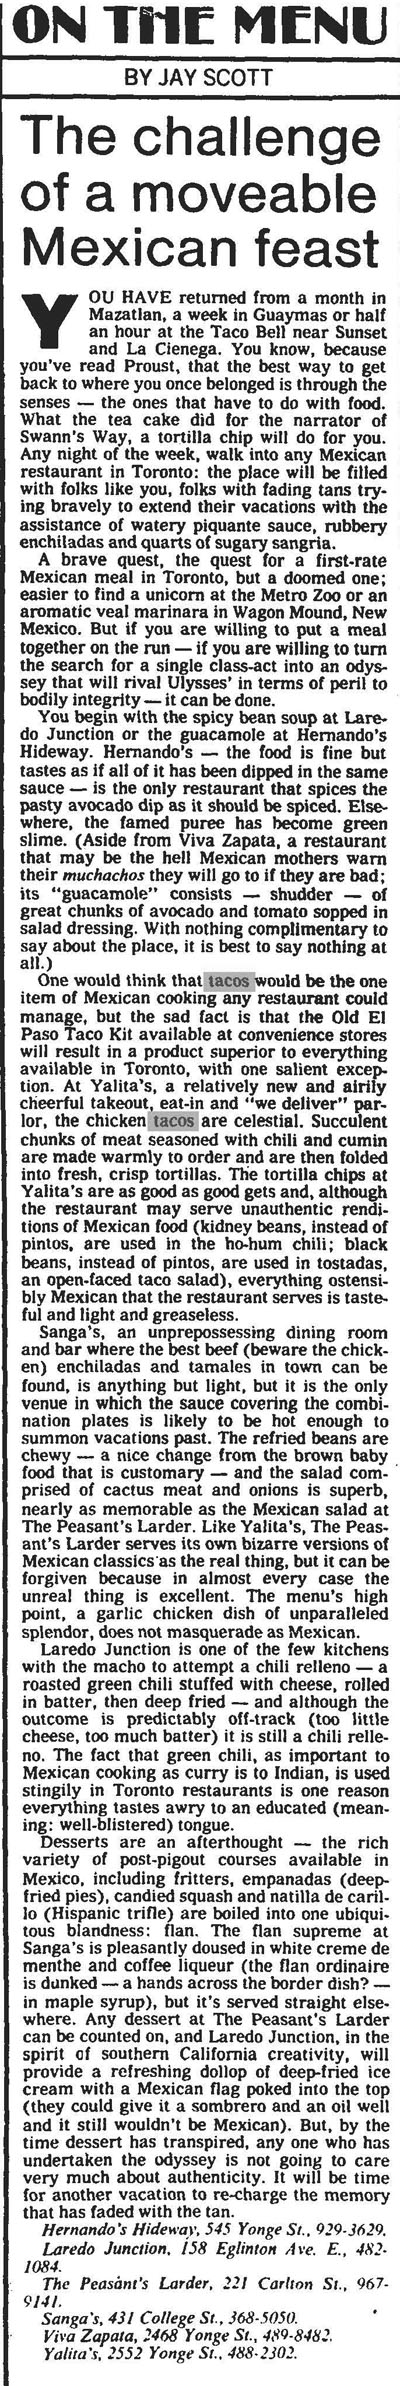 gm 1981-08-22 jay scott on state of mexican food in TO